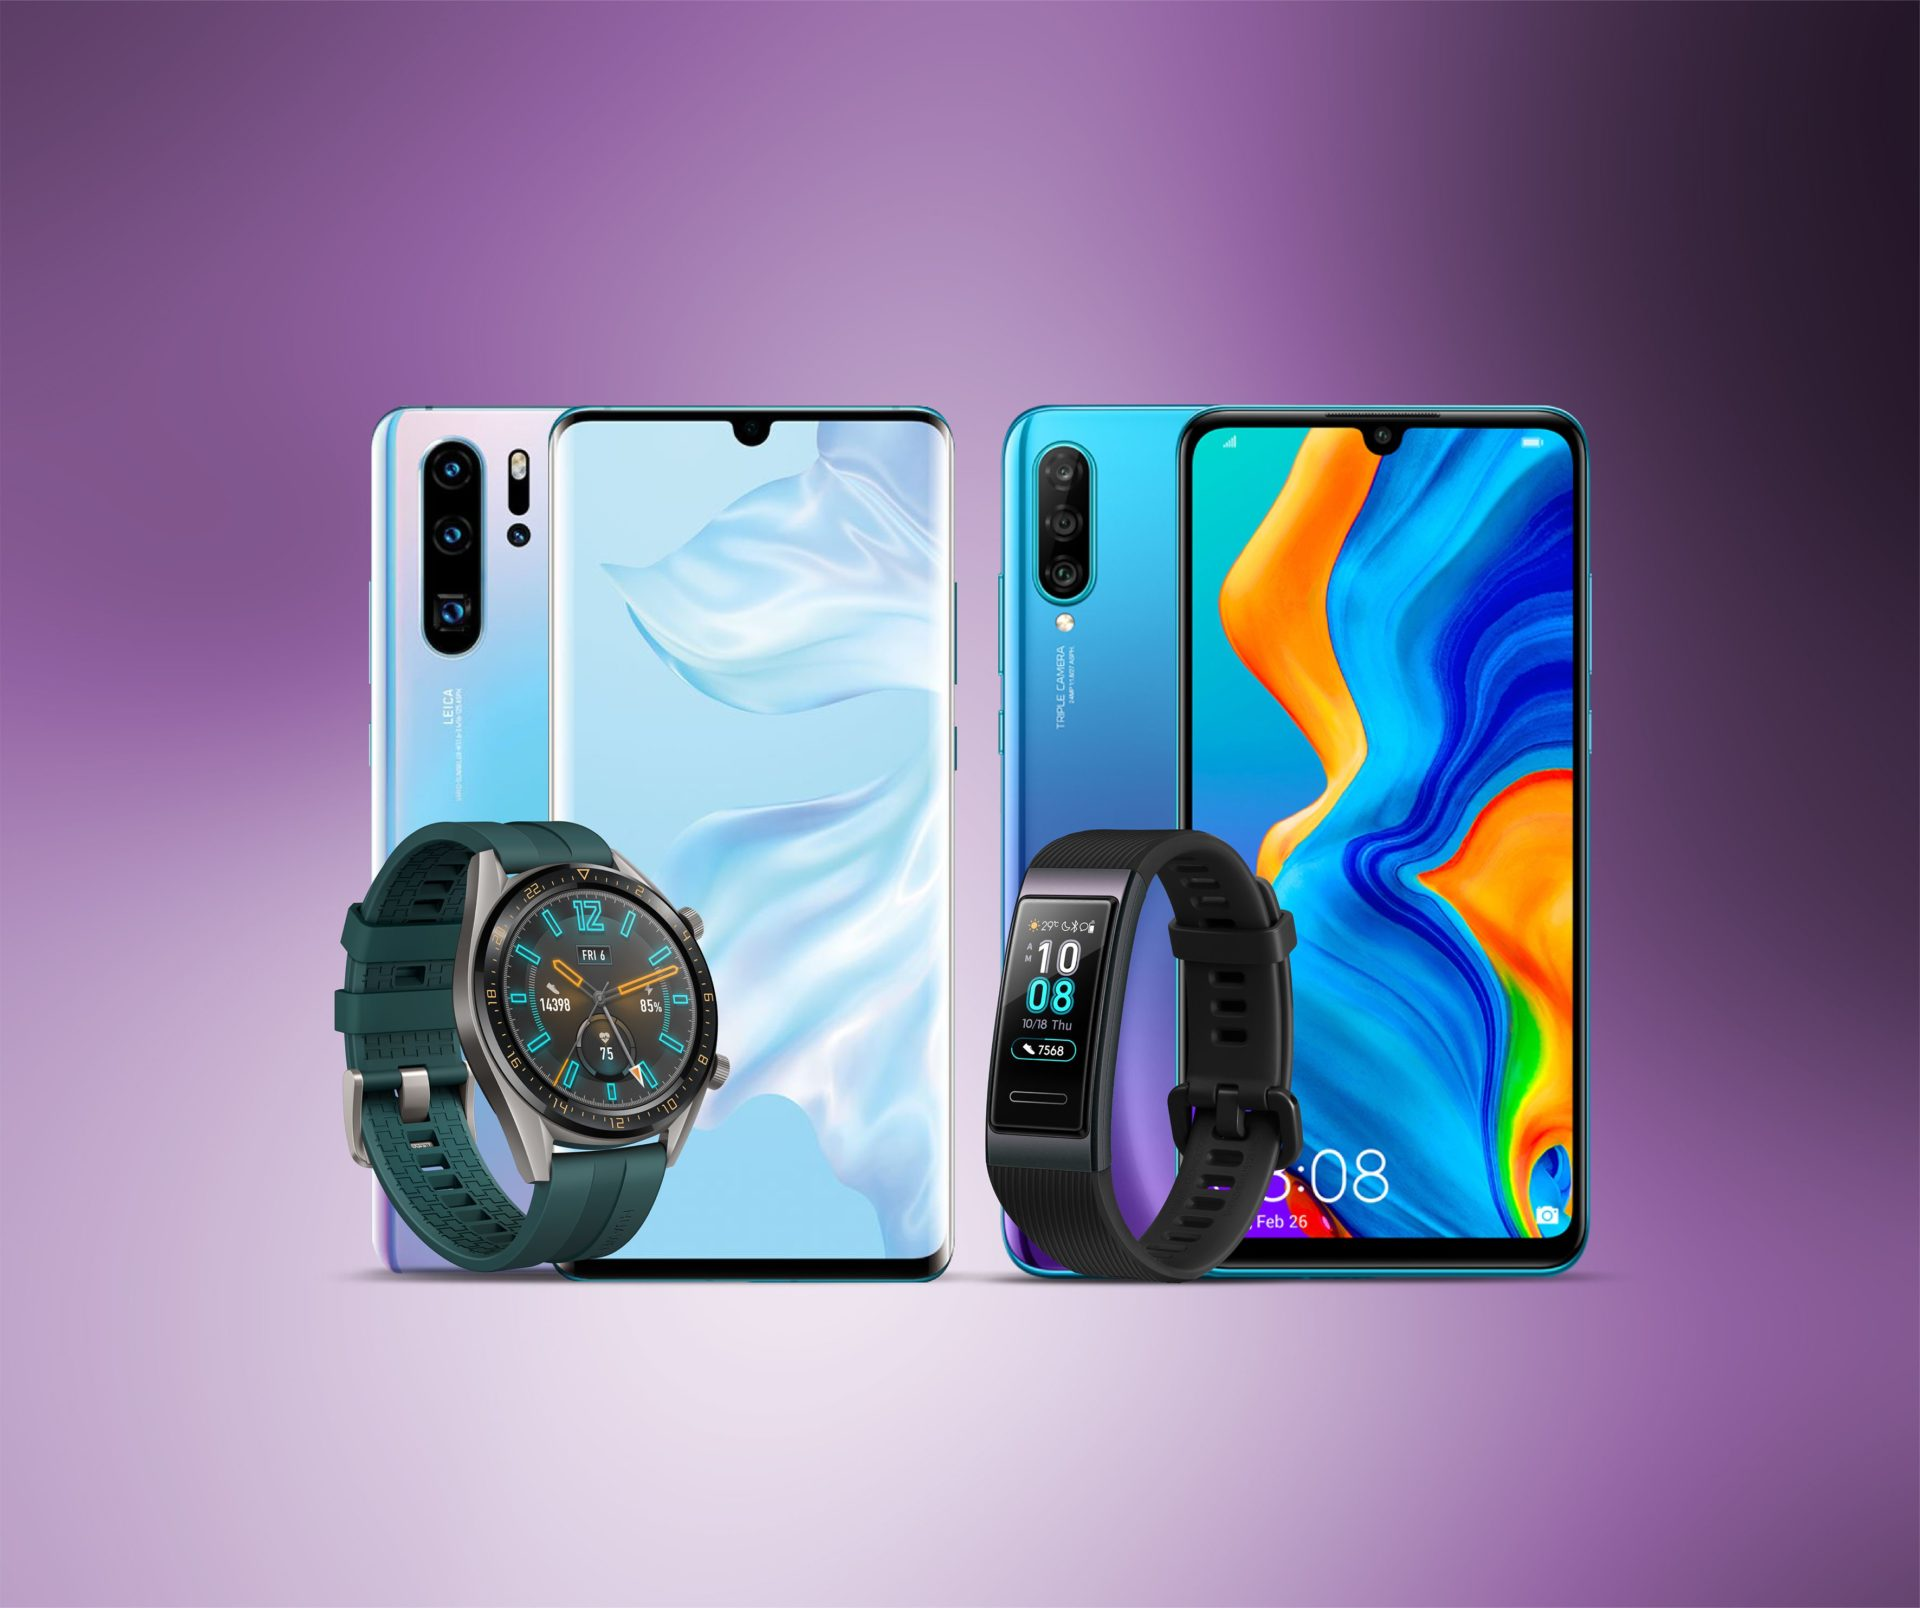 Huawei P30 Pro with Watch GT, P30 Lite with Smart Sport Watch